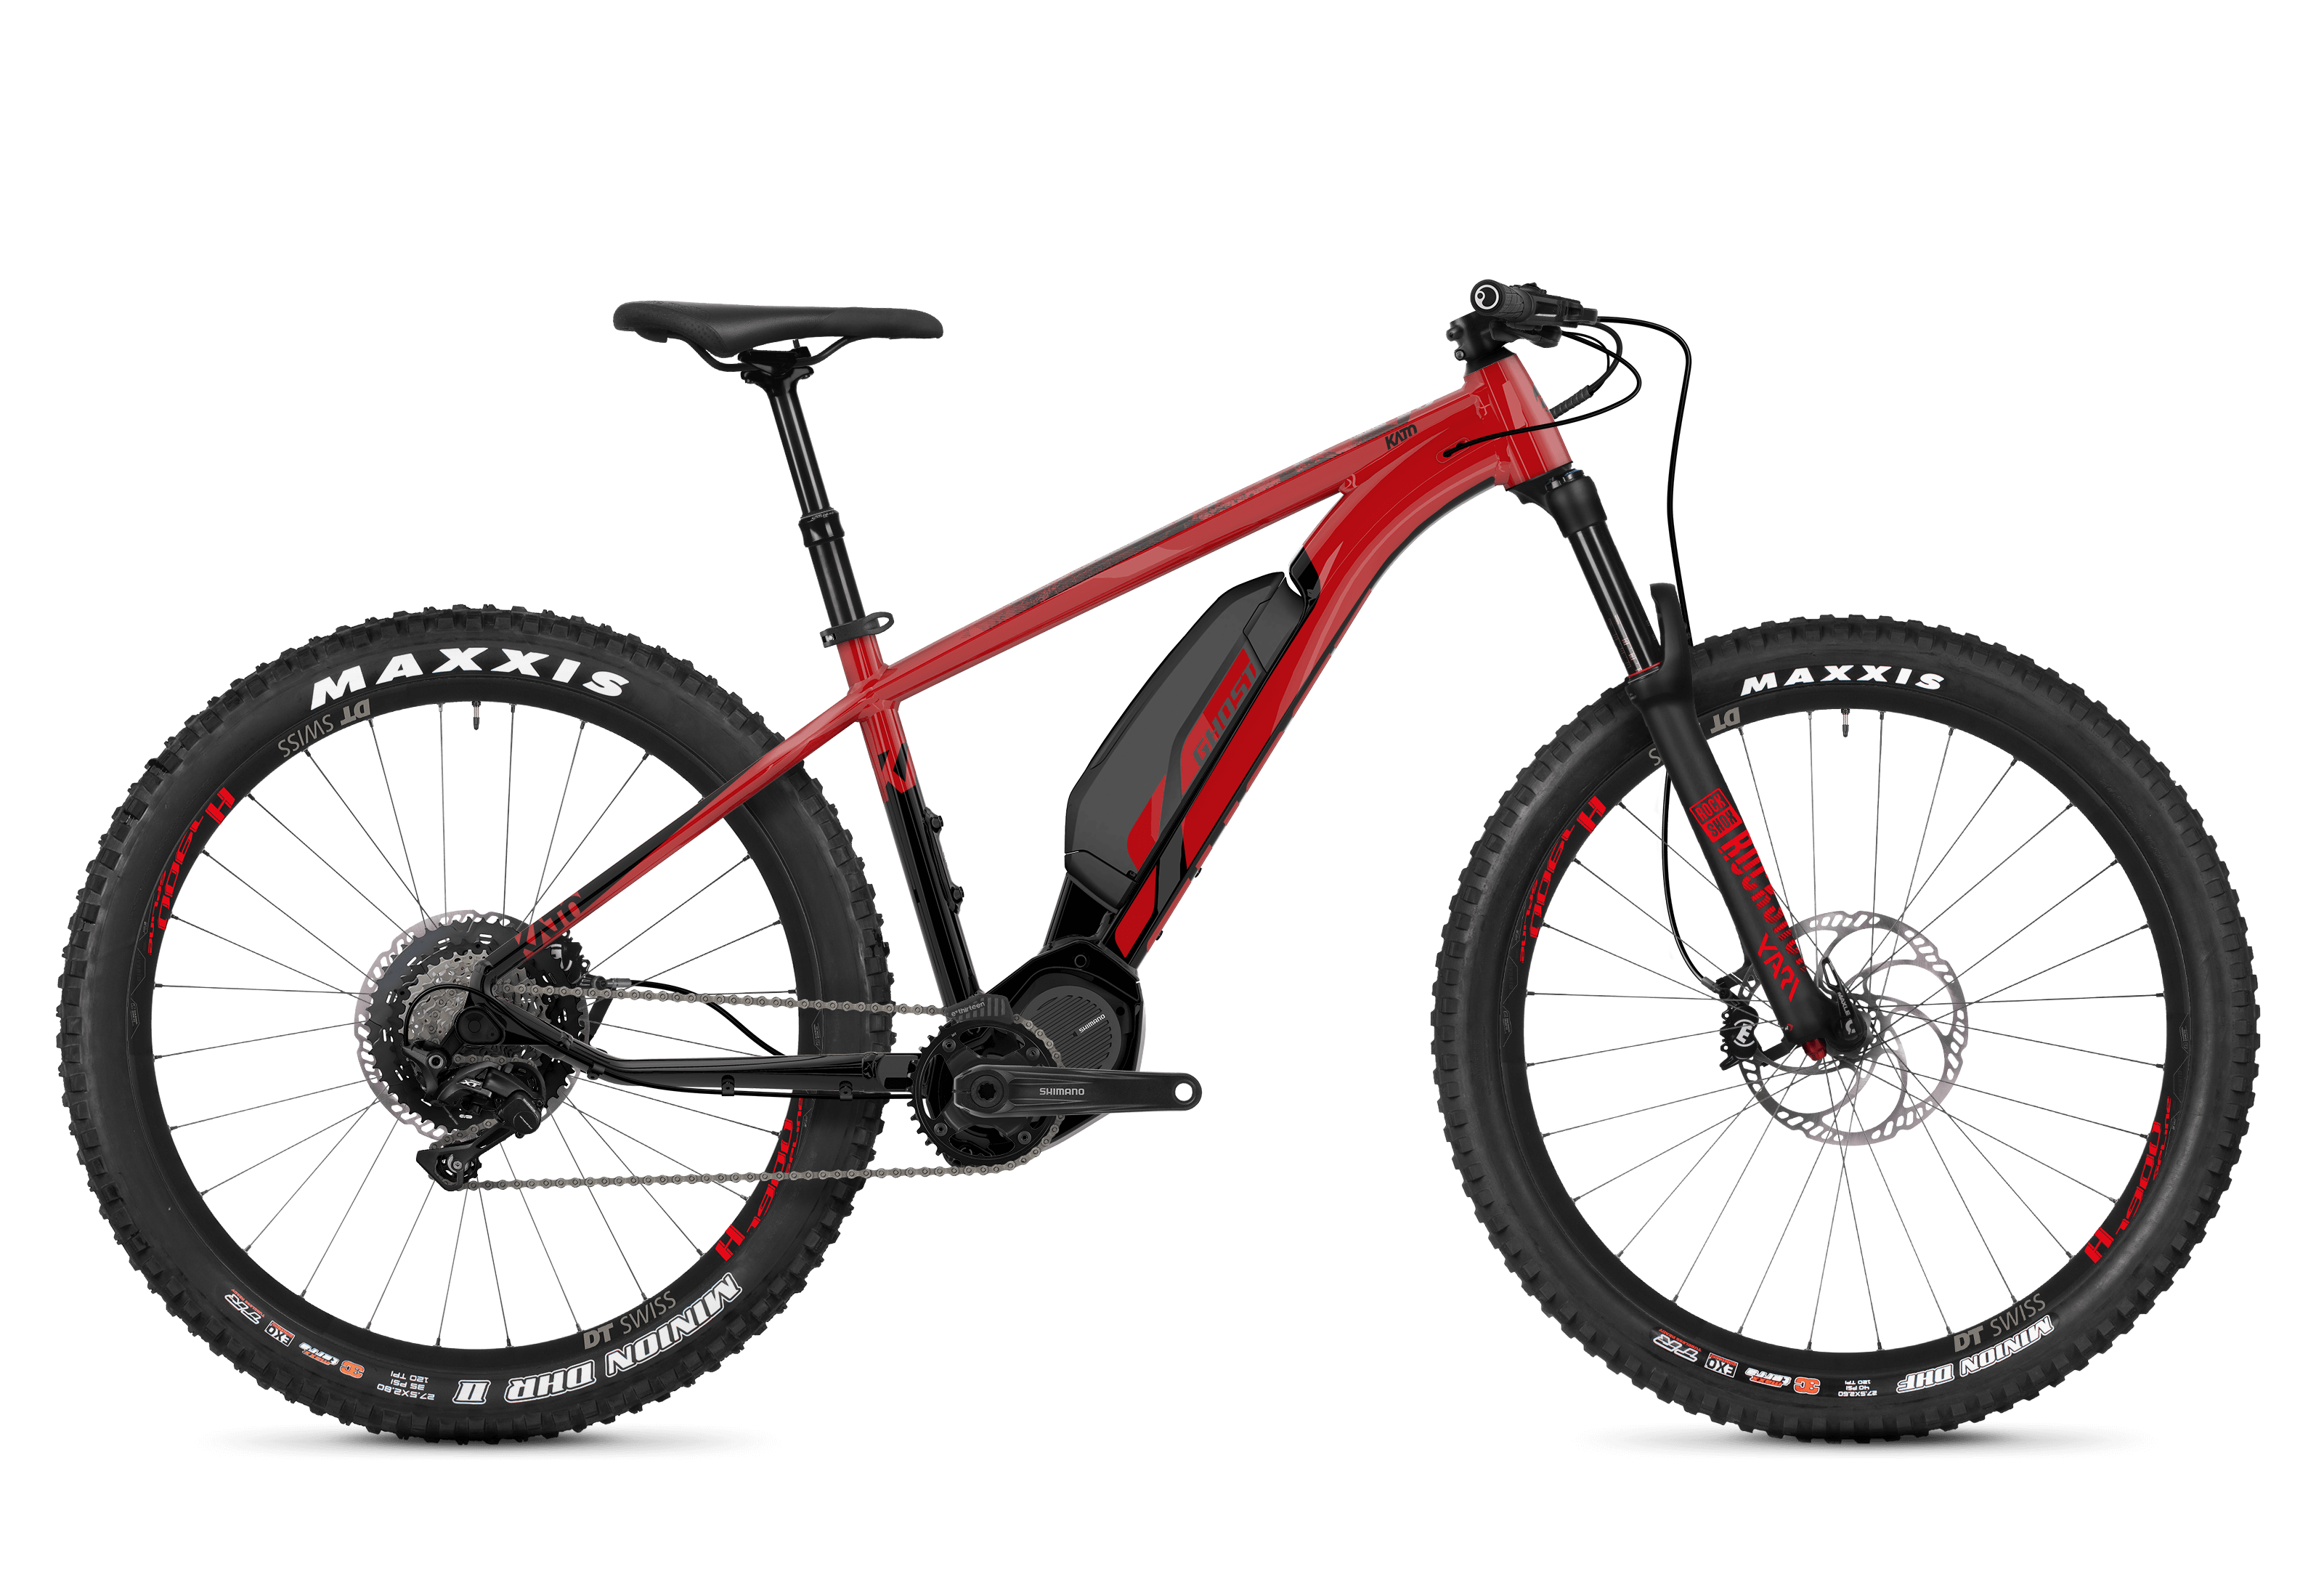 GHOST Ebike Kato S6.7+ - Red / Black